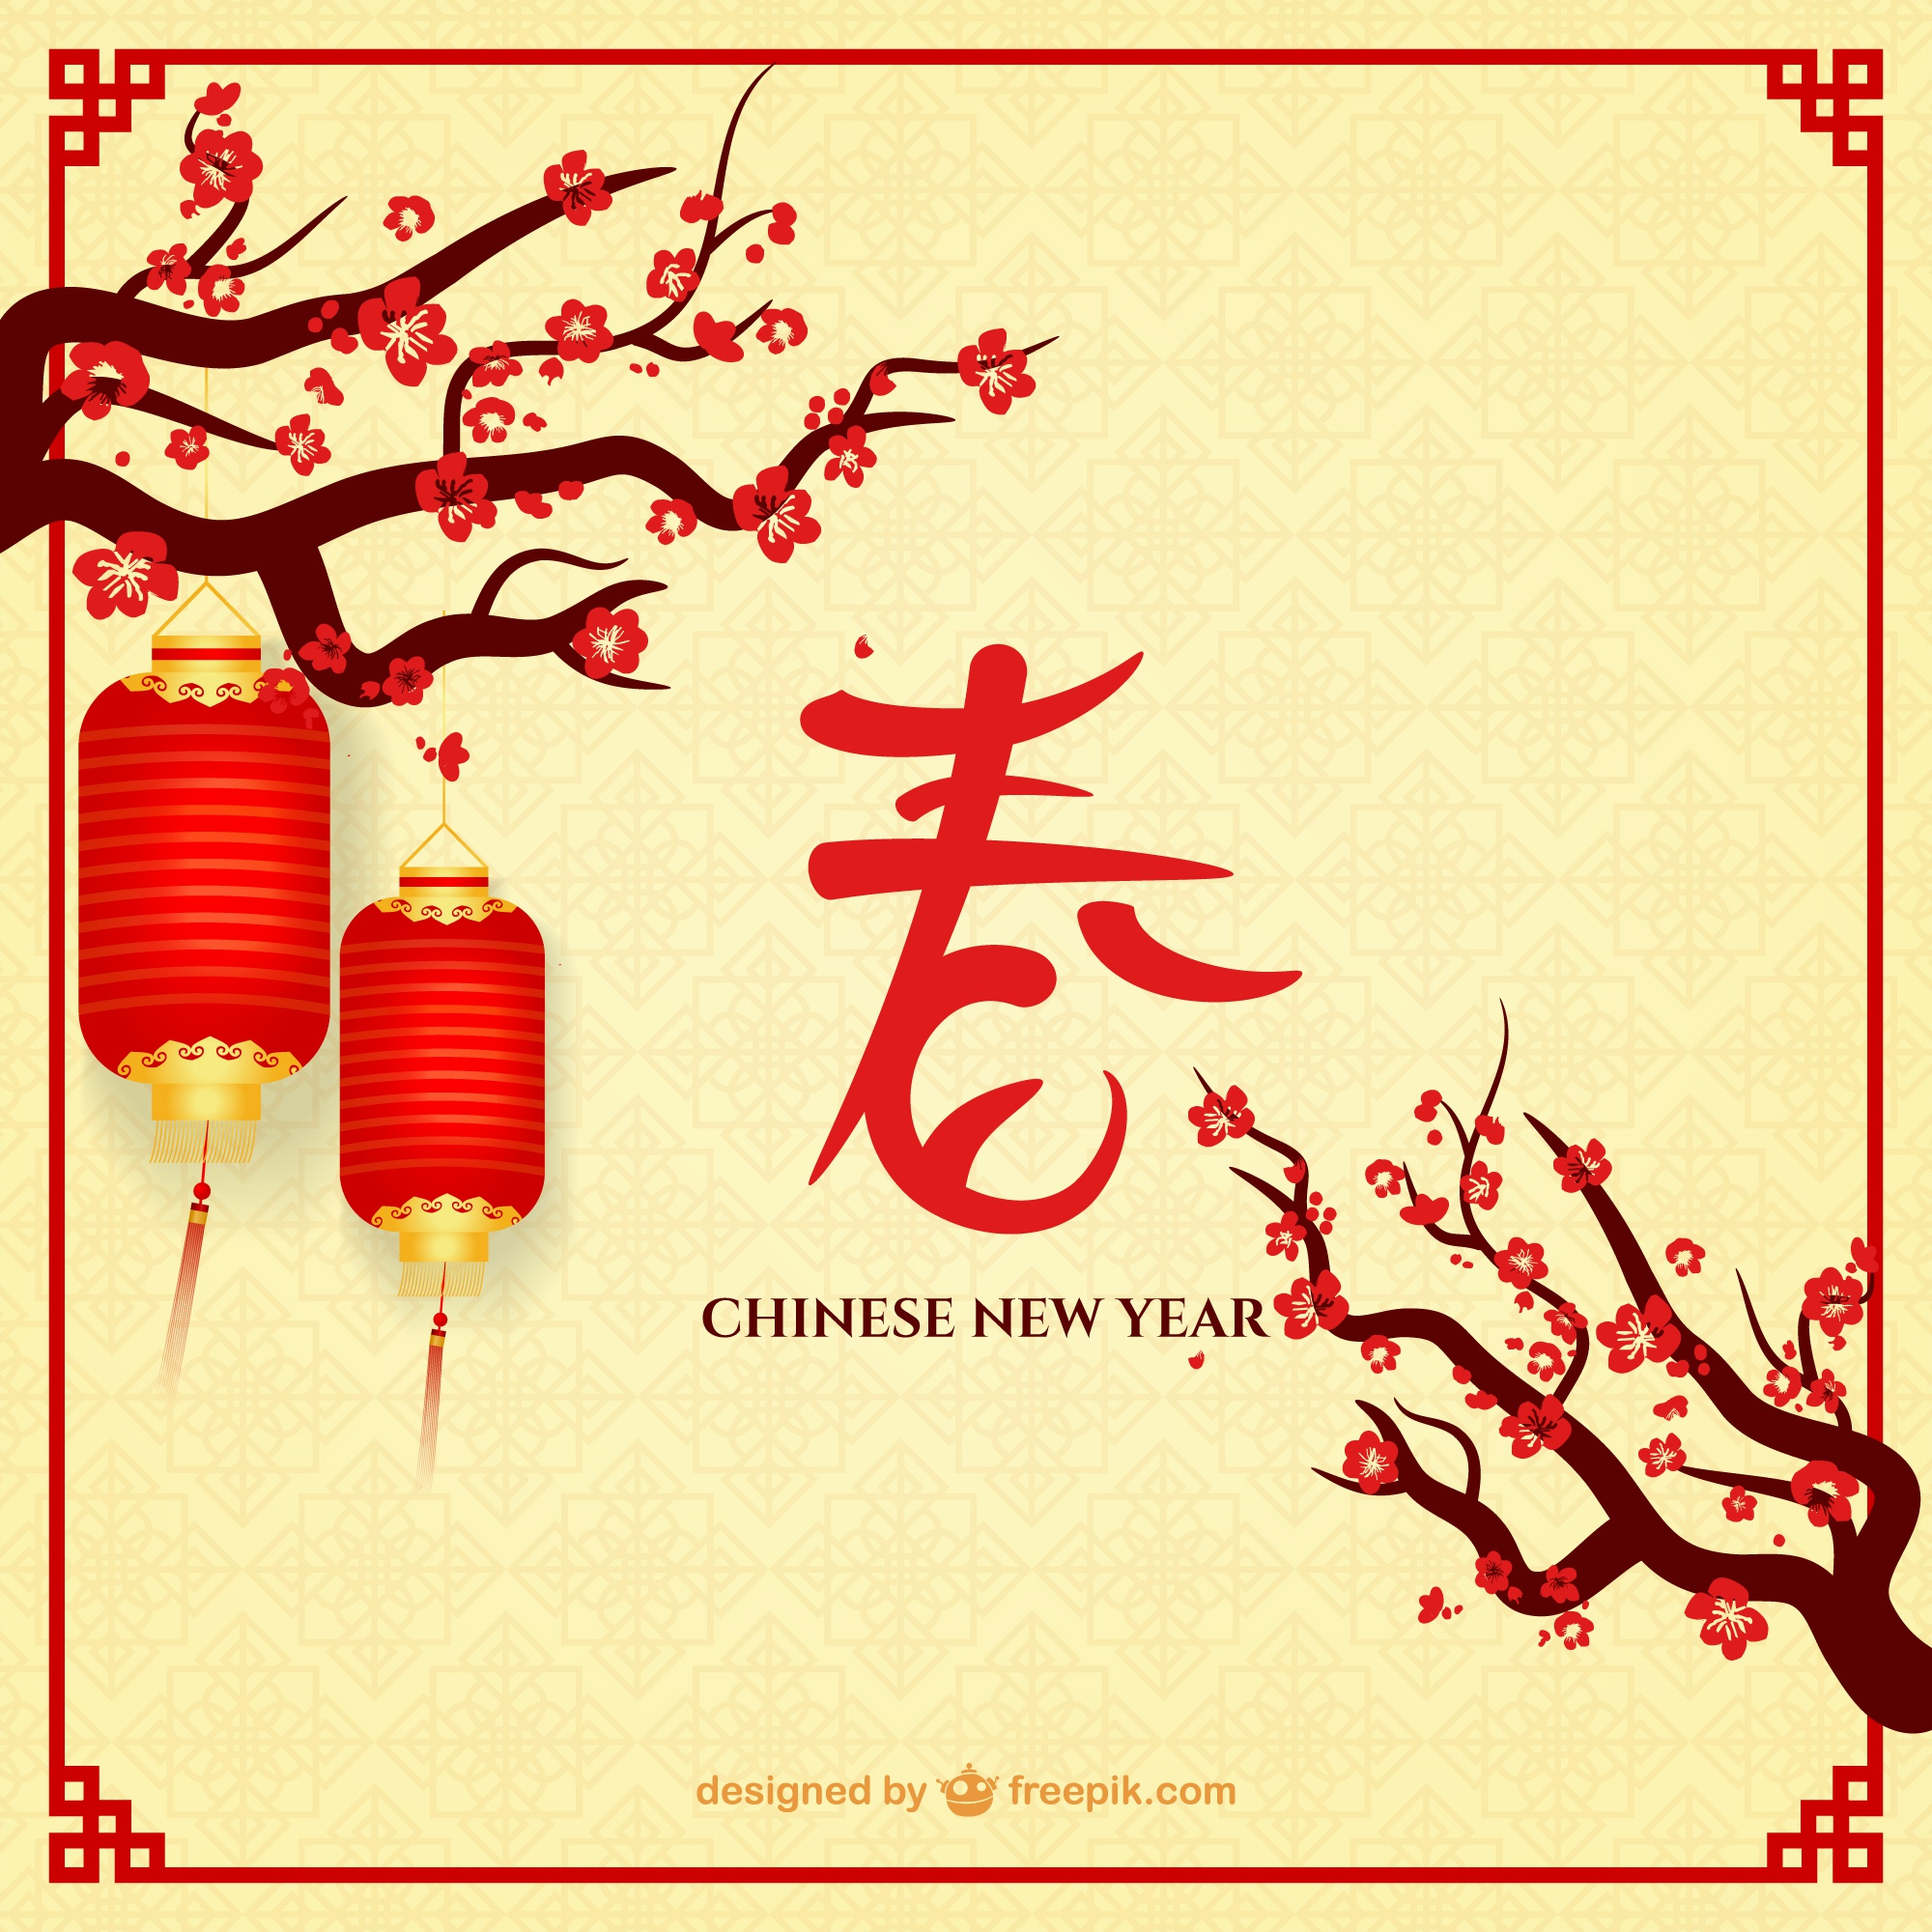 Chinese New Year with lamps